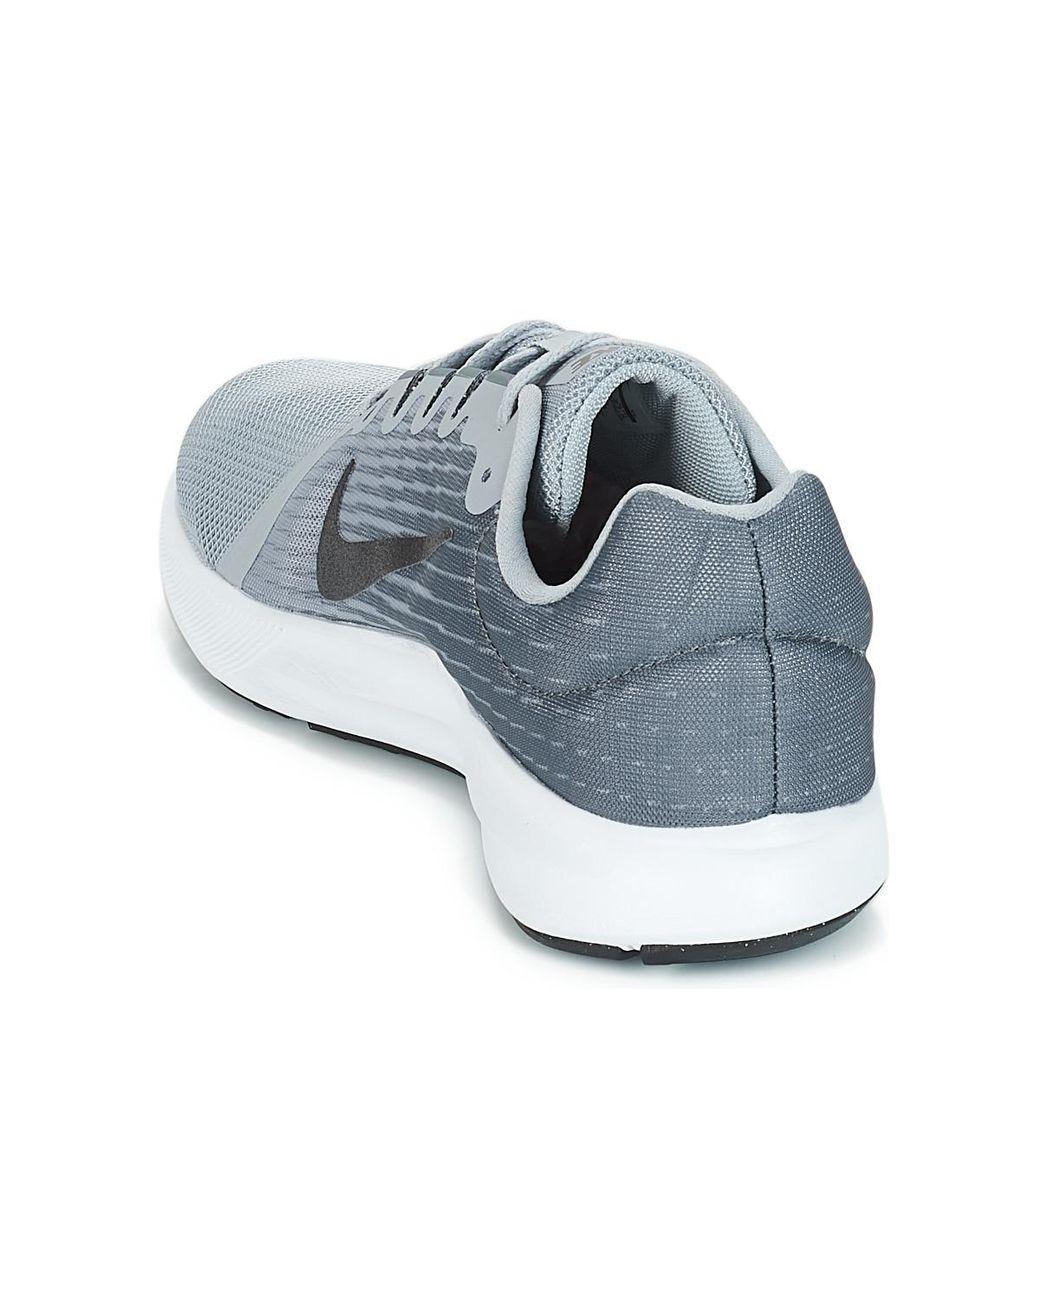 8d3e92705cc5a Nike Downshifter 8 Men s Running Trainers In Grey in Gray for Men - Save 6%  - Lyst